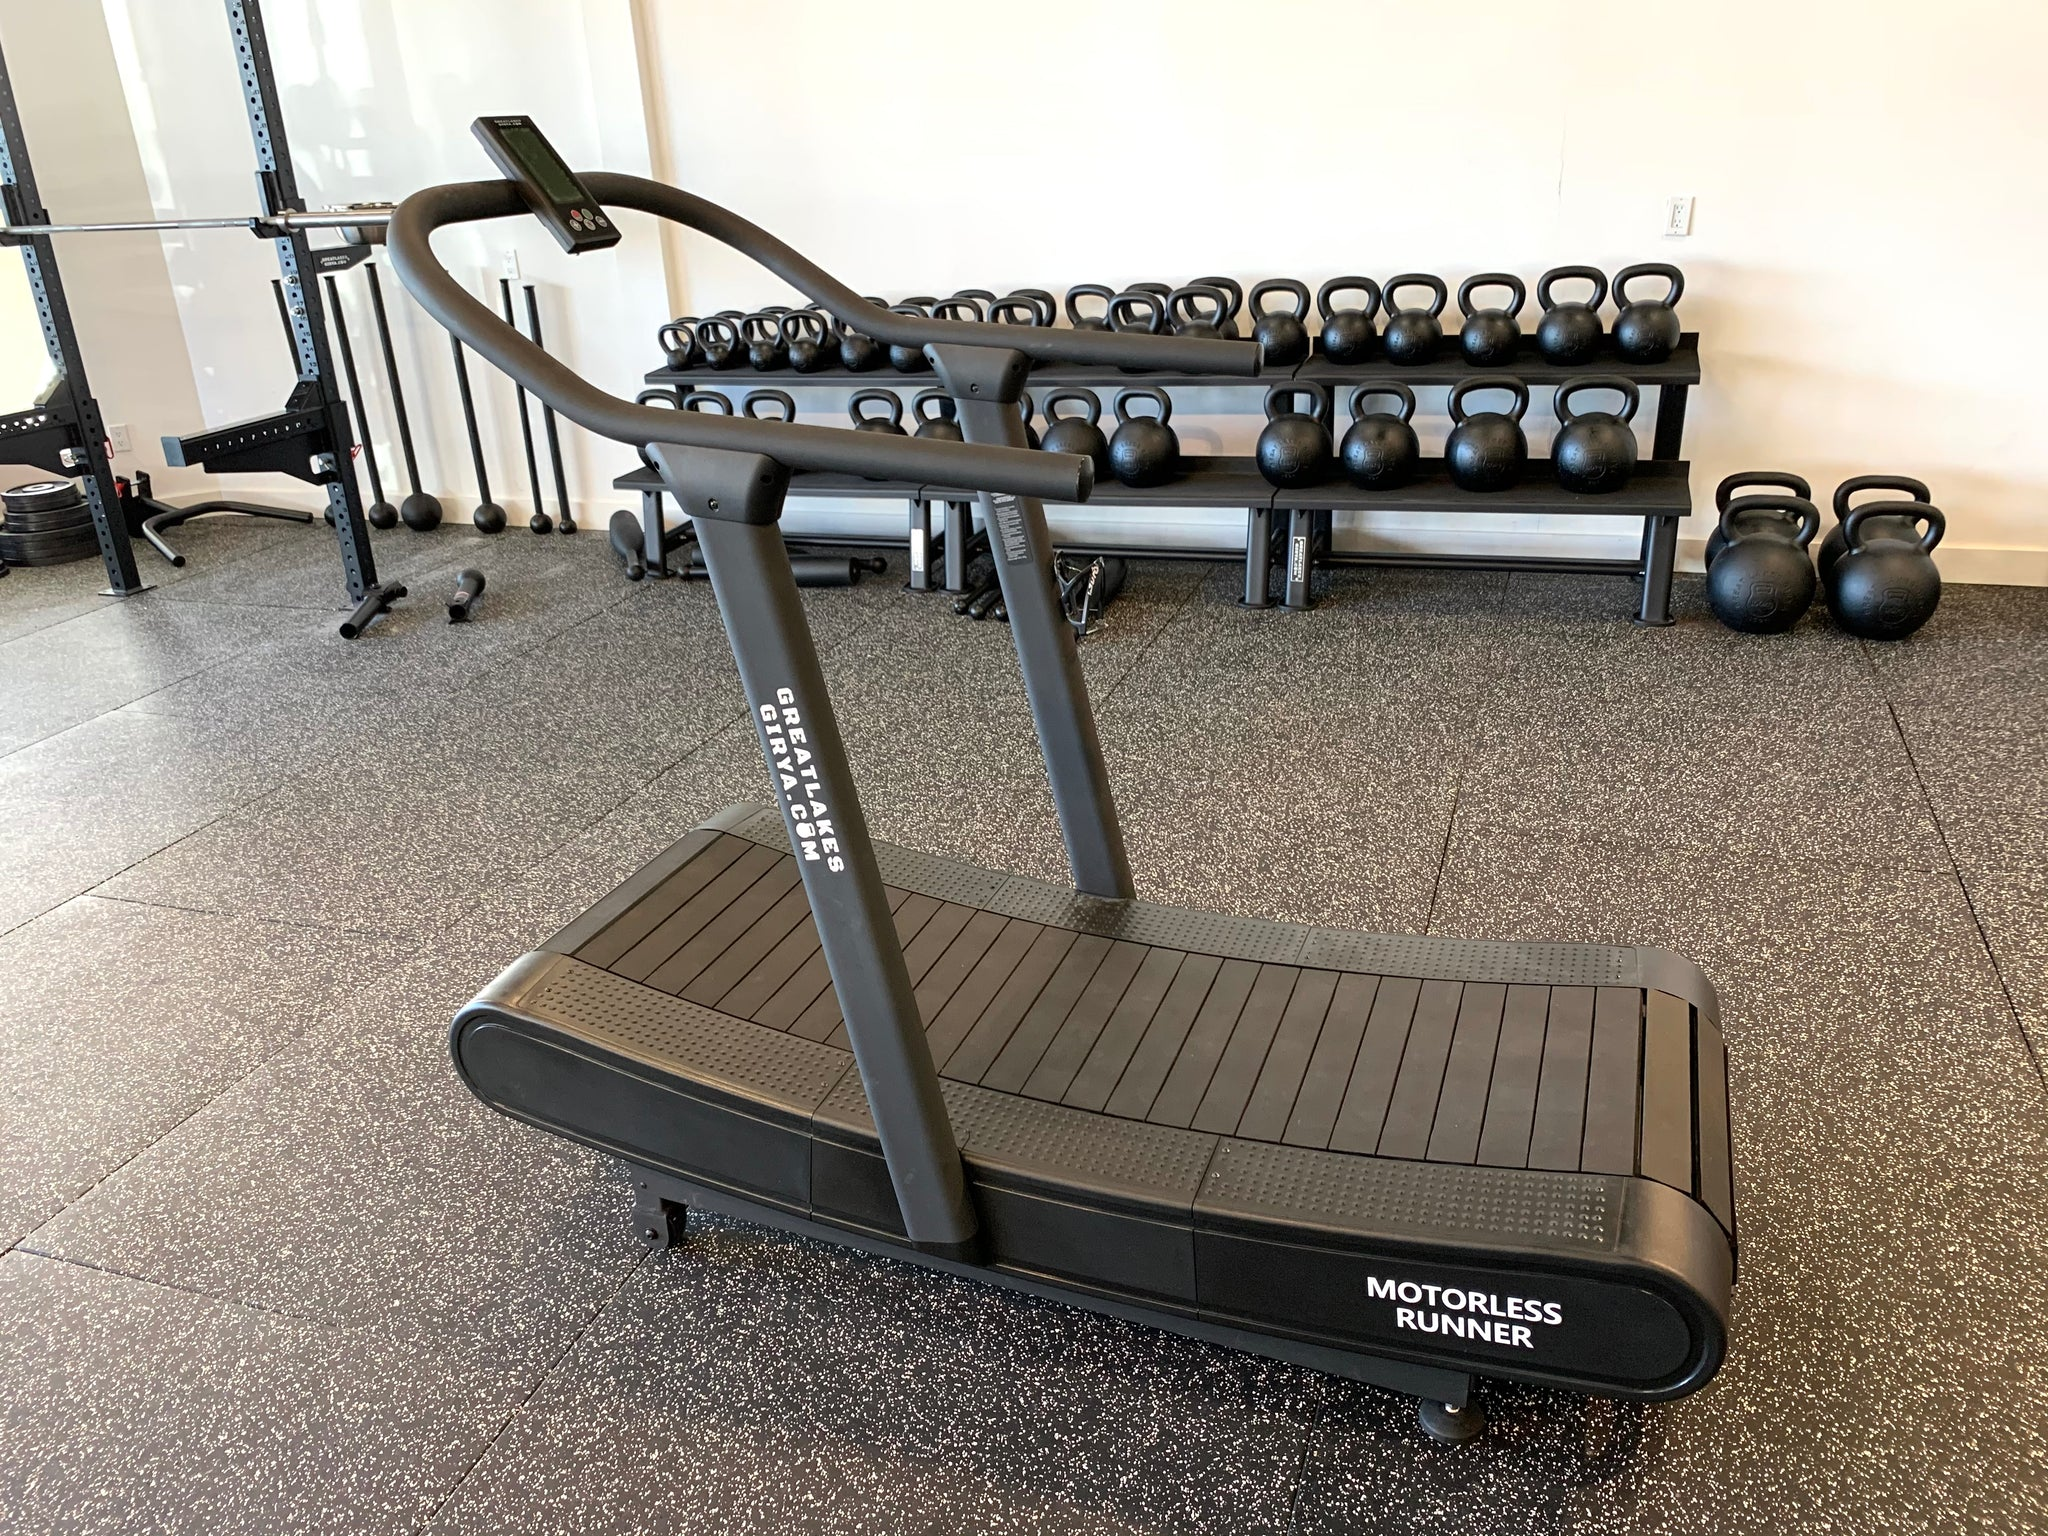 GLG Curved Motorless Treadmill - Great Lakes Strength Manufacturing